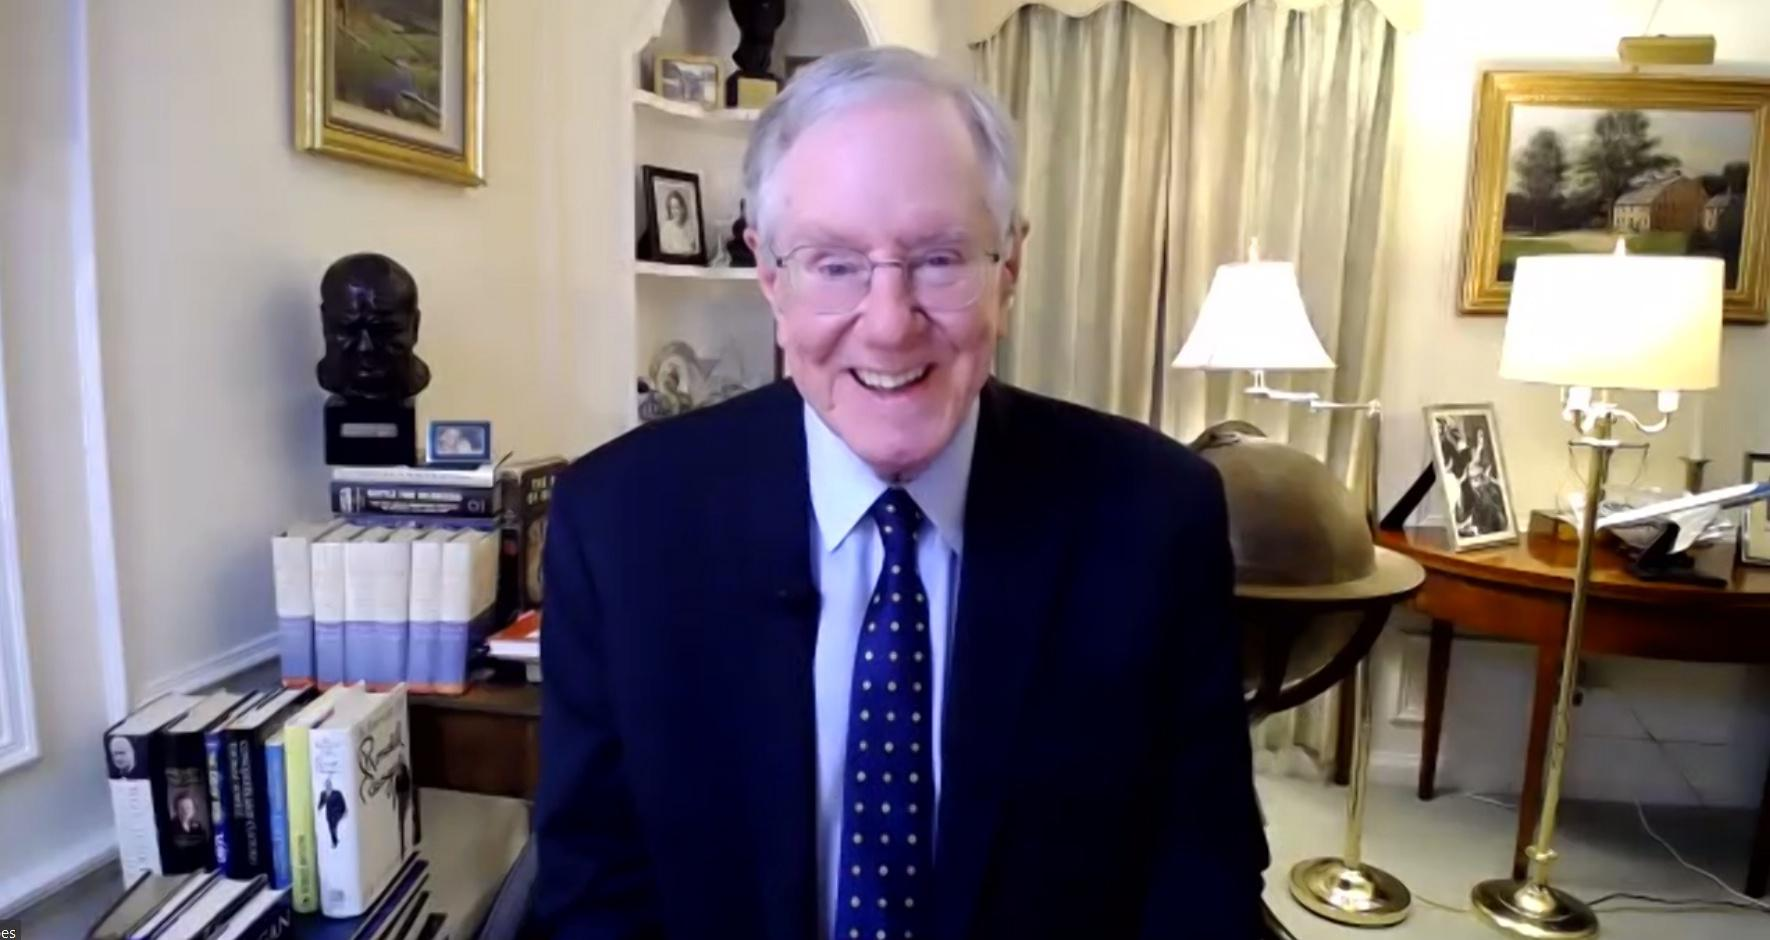 Steve Forbes, chairman and editor-in-chief, Forbes Media